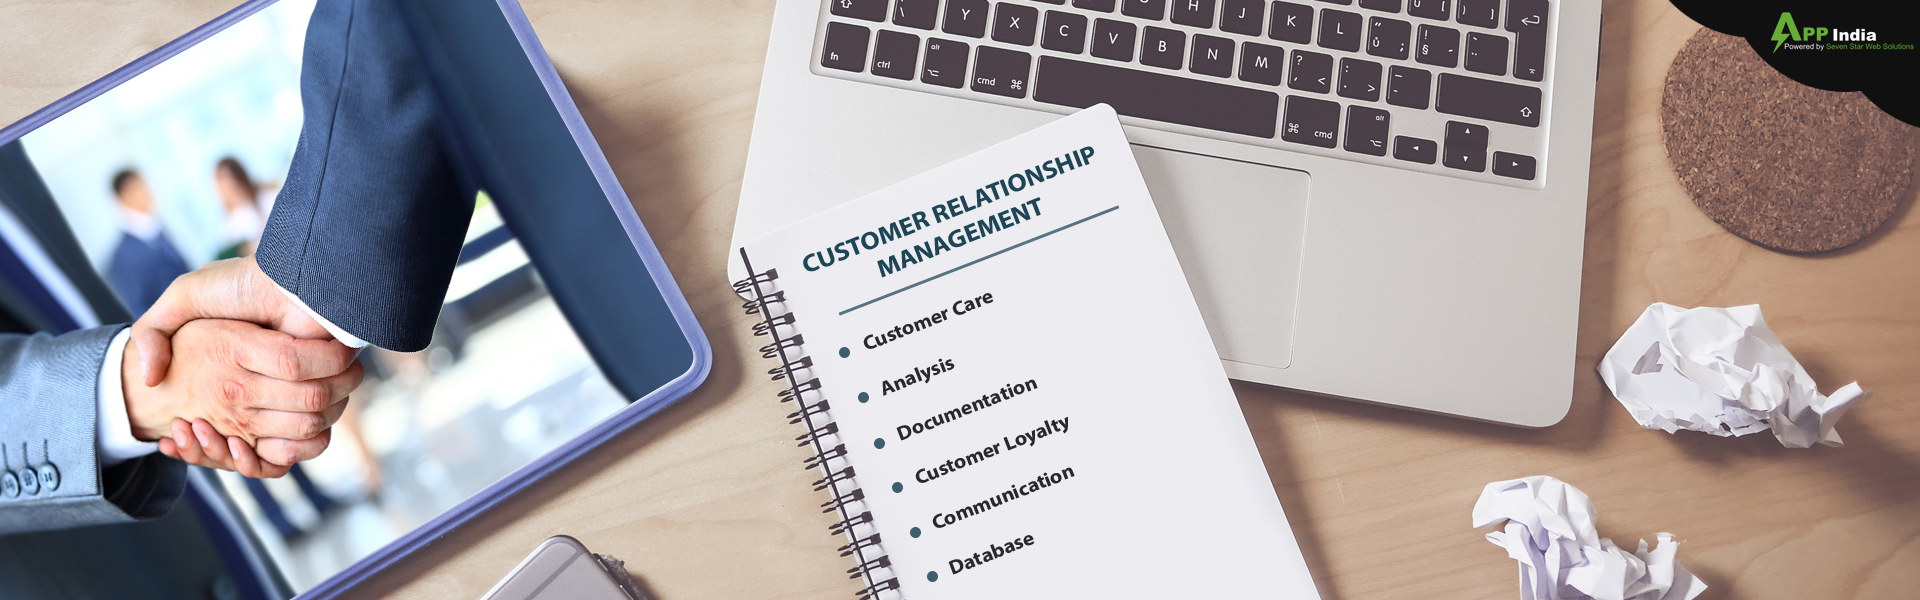 Customer Relationship Management Services